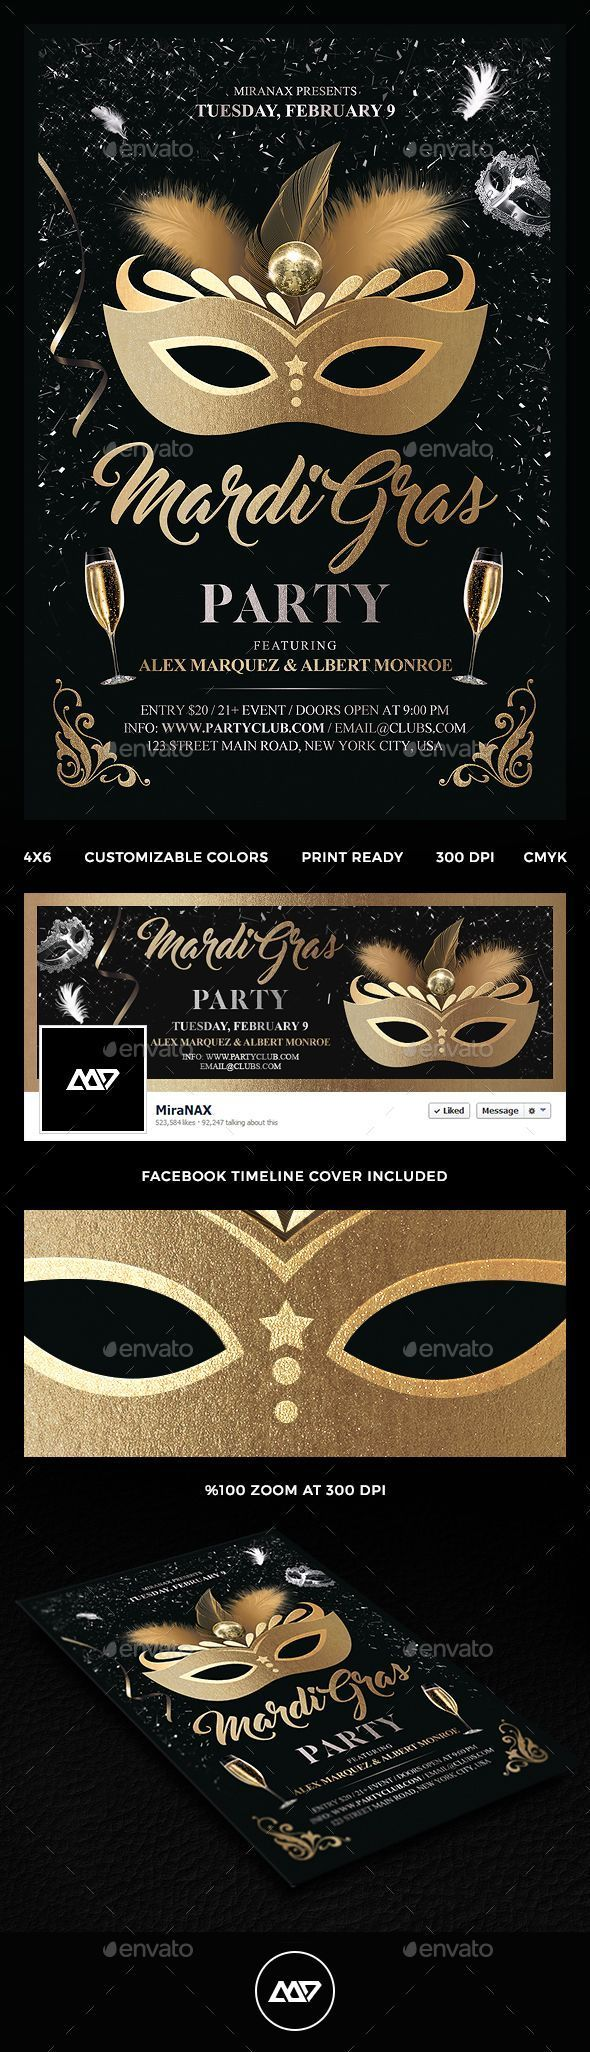 29 best Masquerade Ball images on Pinterest | Anniversary party ...